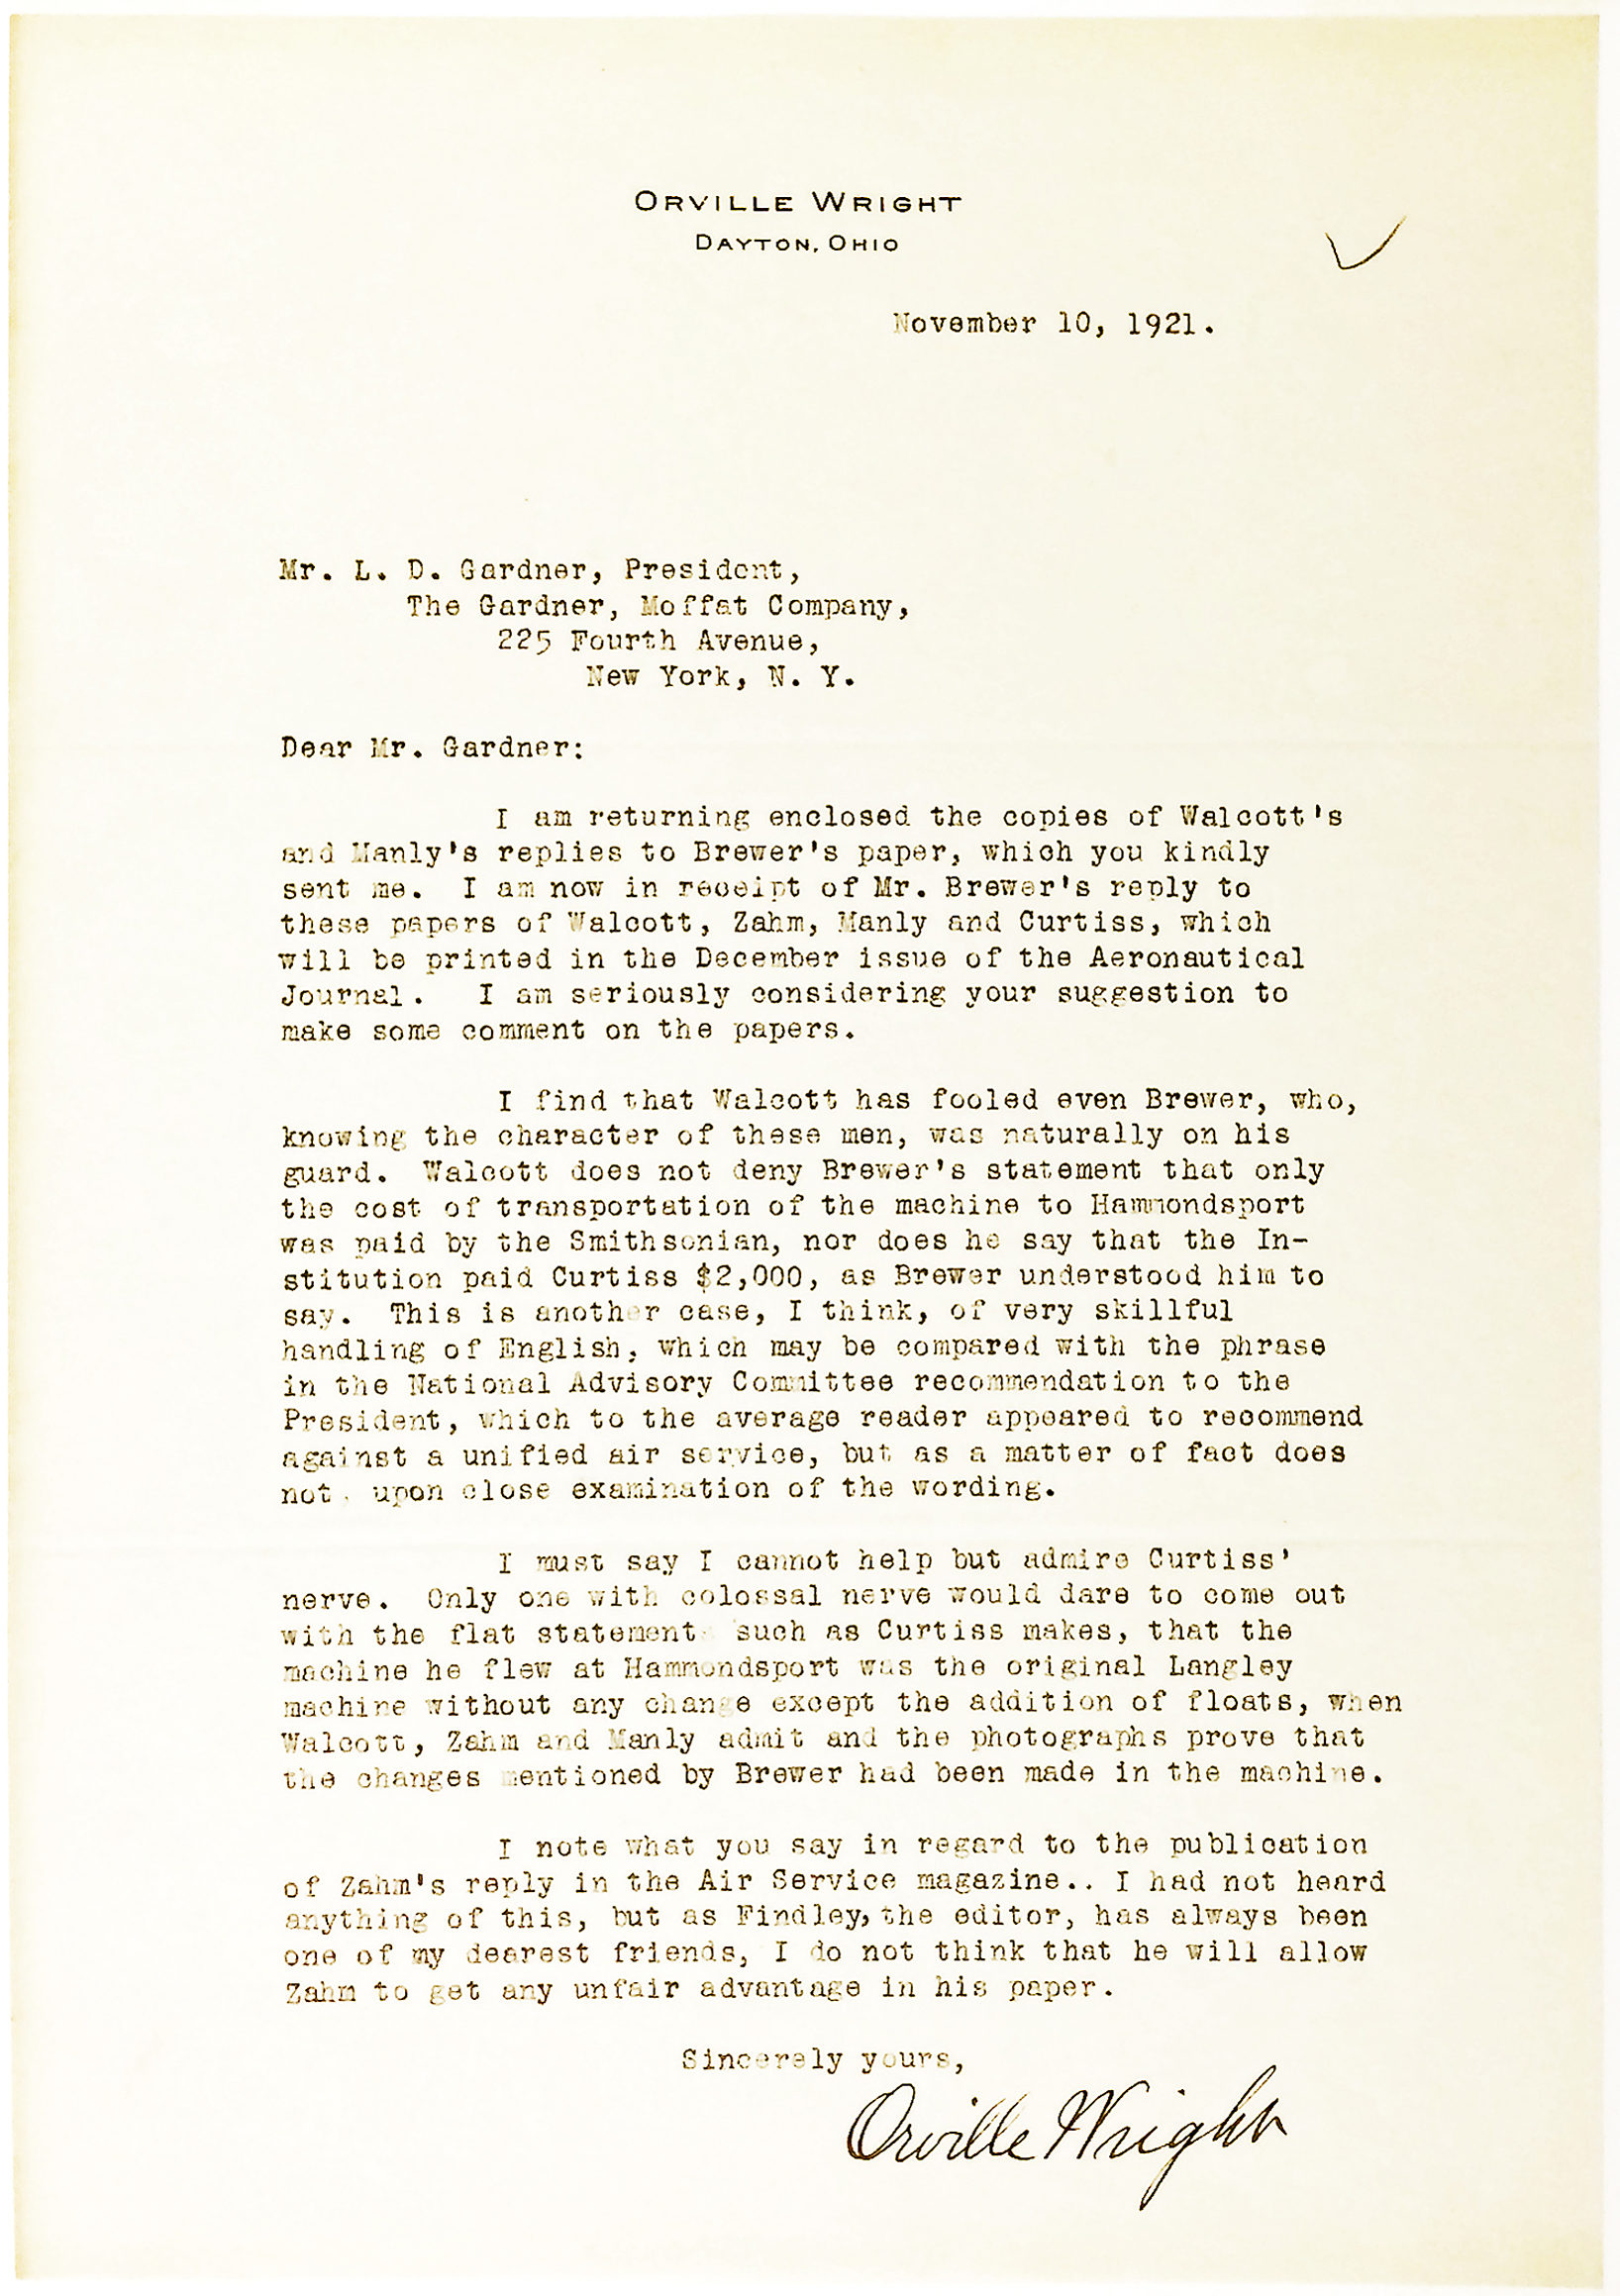 "Remarkable Typed Letter Signed about Glenn H. Curtiss' Behavior: ""Only one with colossal nerve would dare to come out with the flat statements… that the machine he flew…was the original Langley machine"""